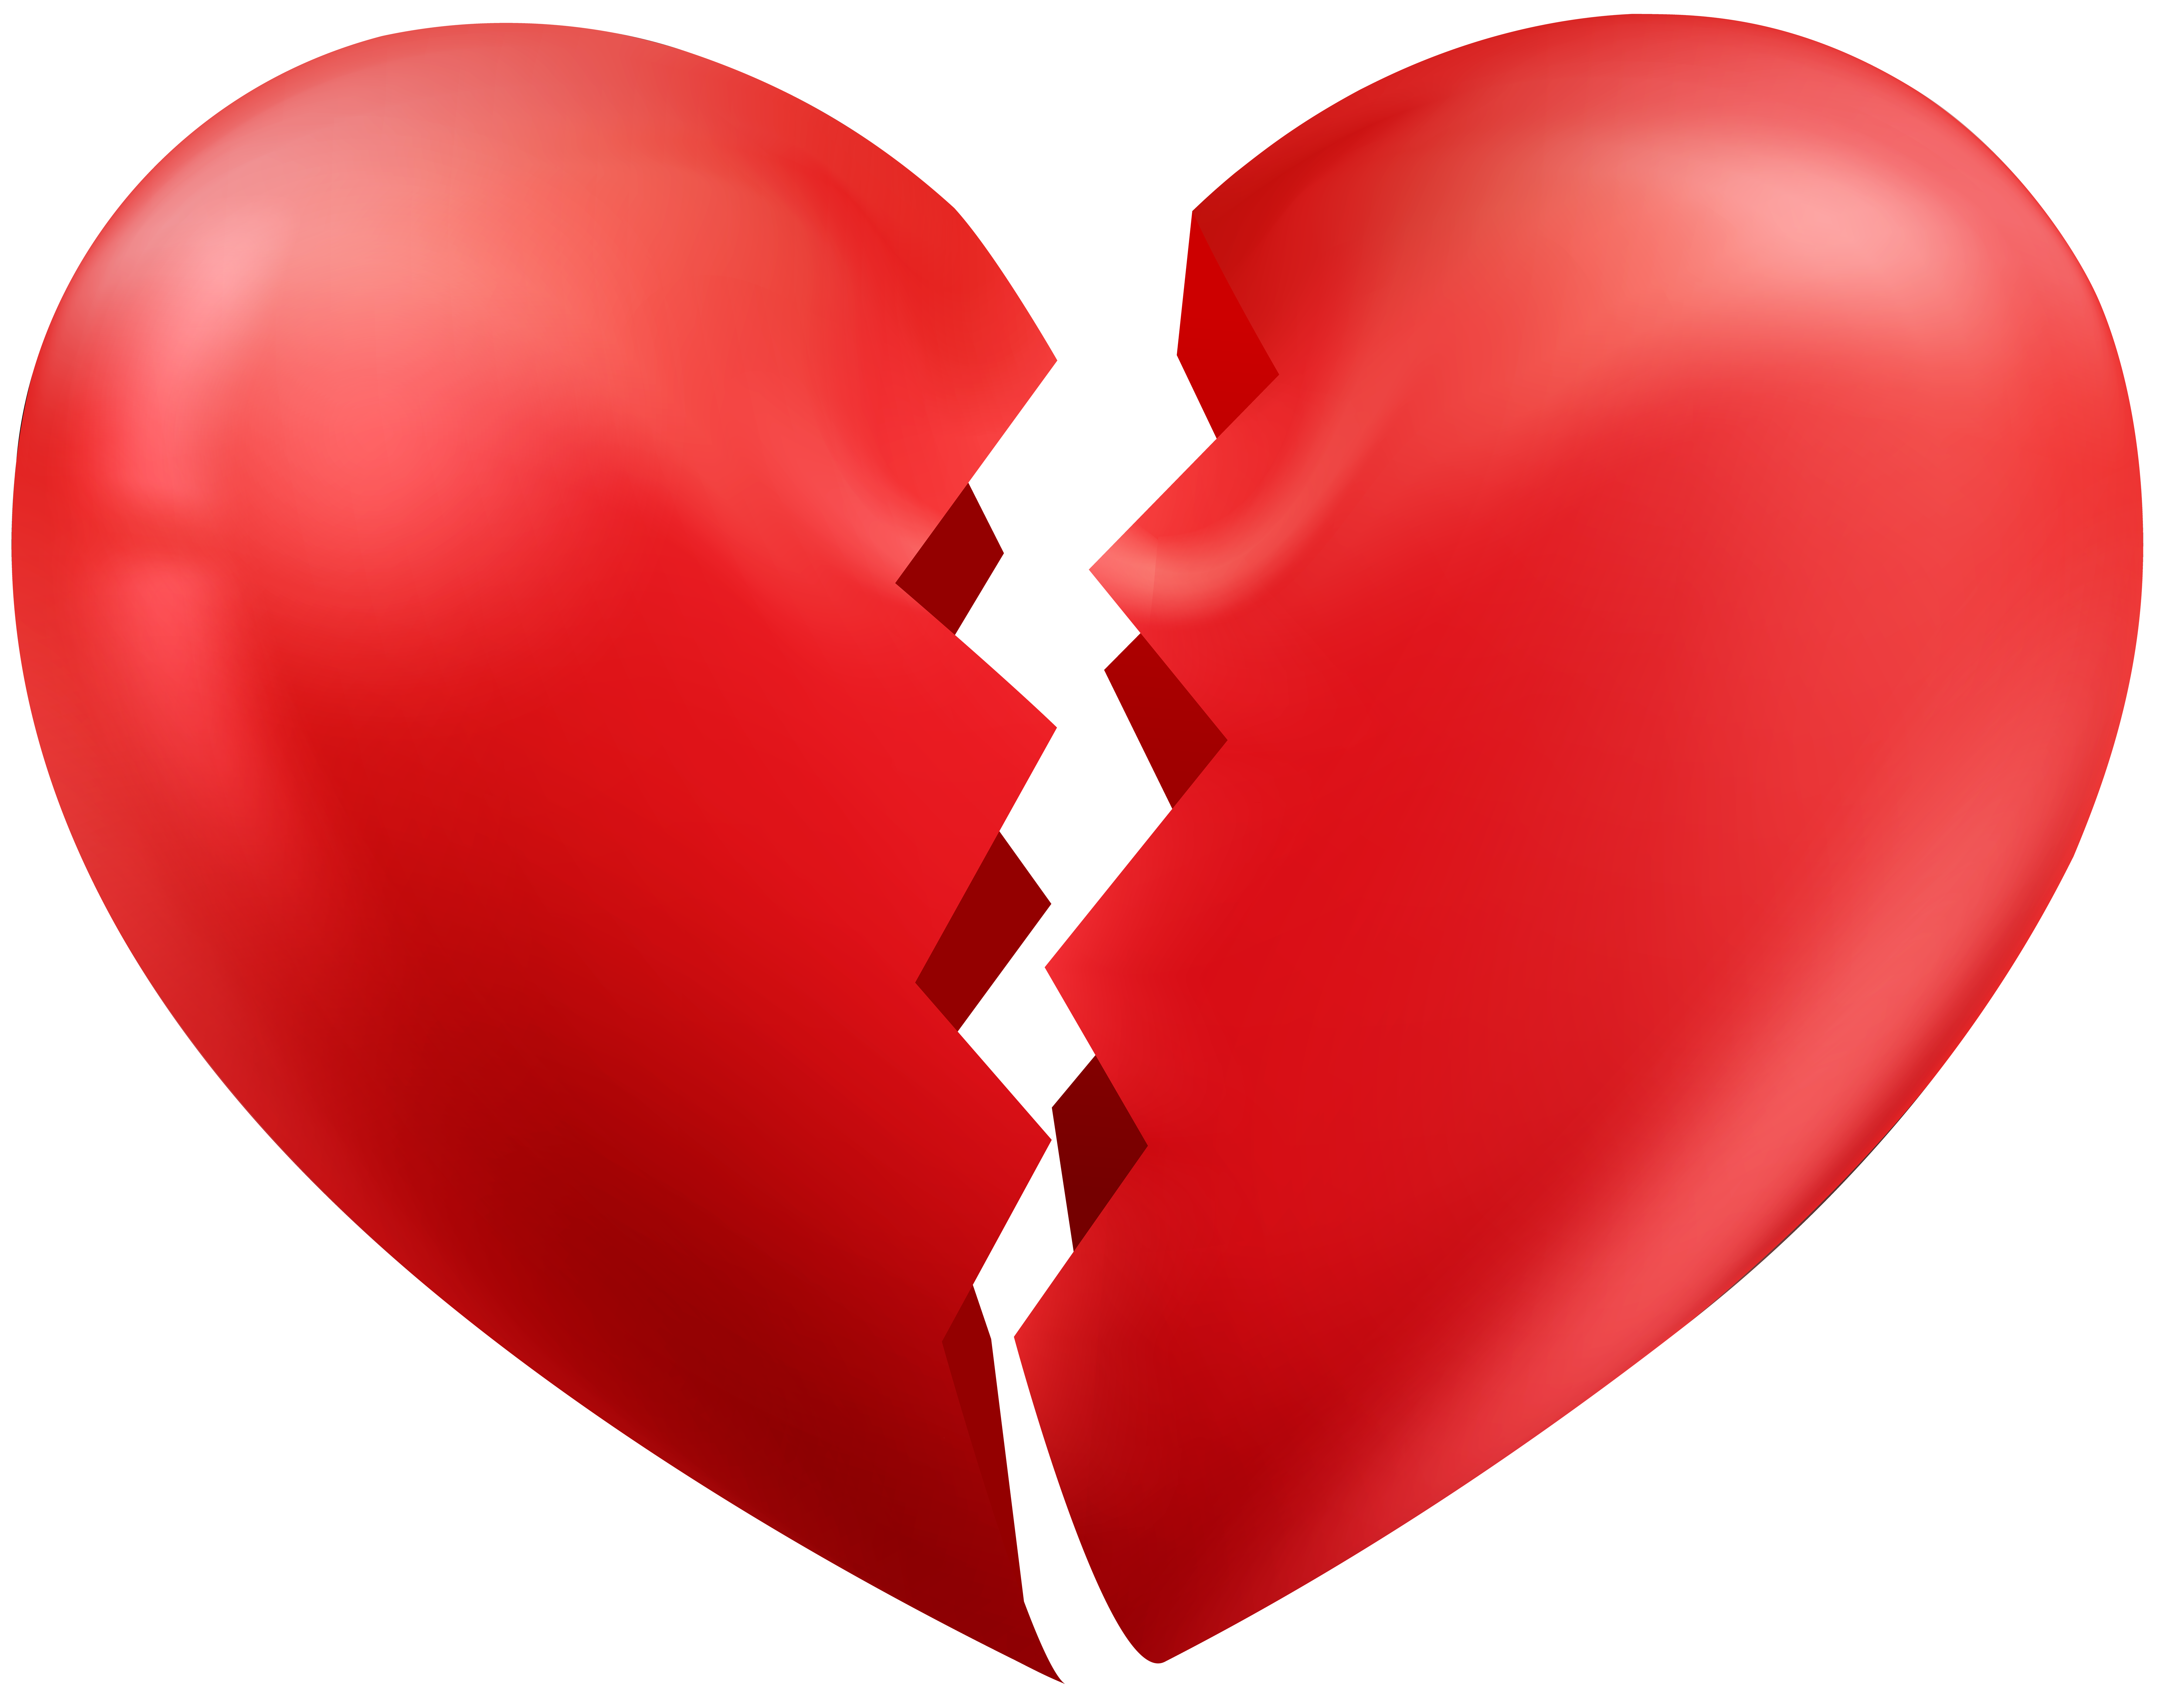 Broken heart free clipart picture royalty free Broken Heart Transparent PNG Clip Art Image | Gallery Yopriceville ... picture royalty free